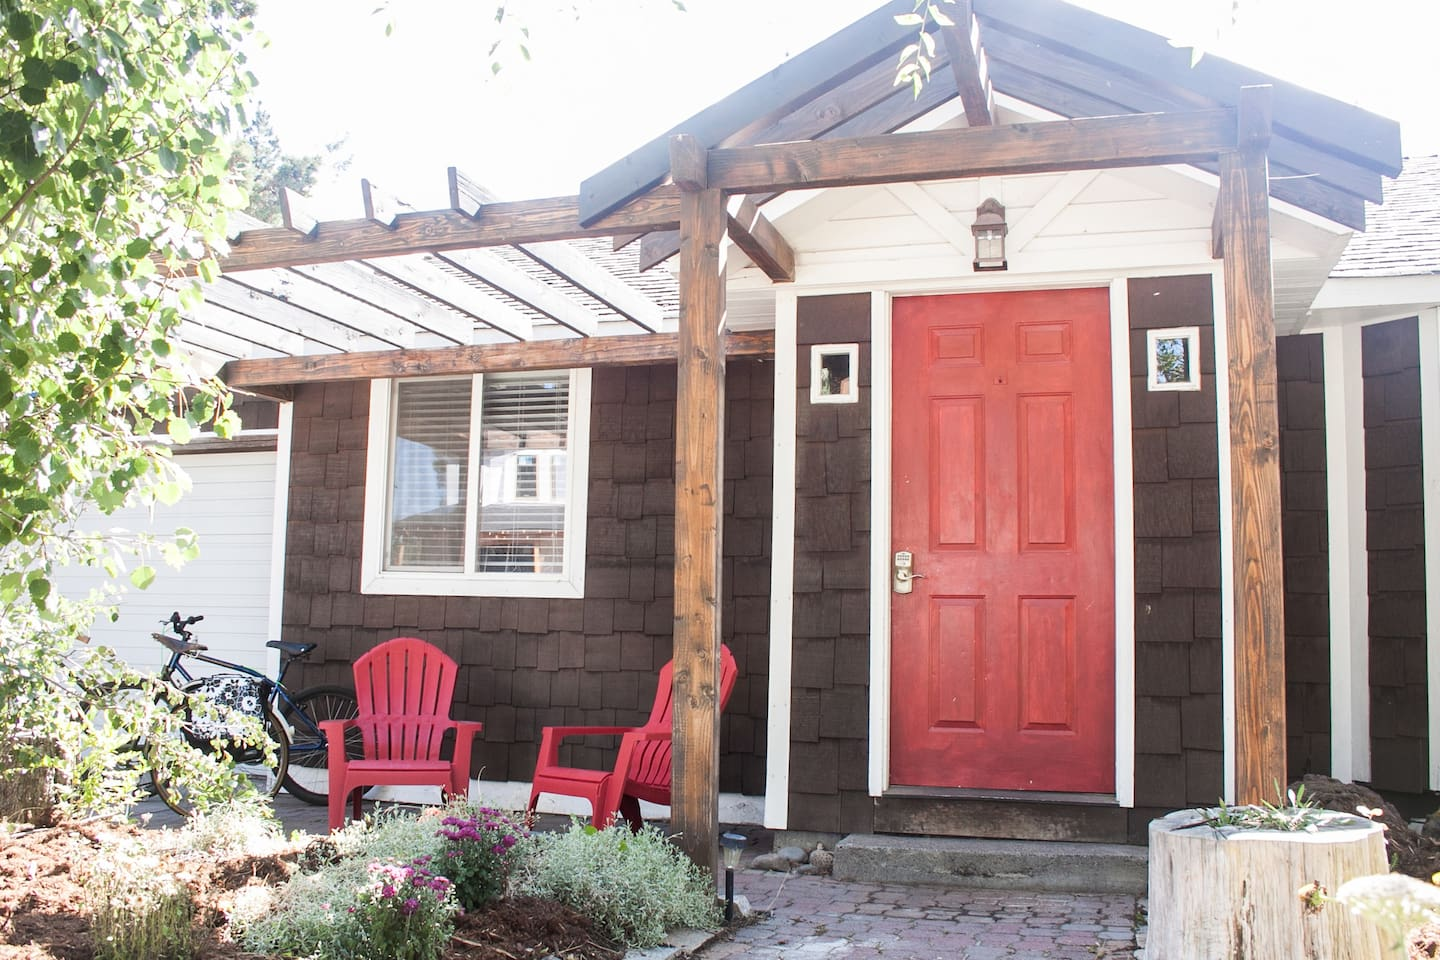 Cinder Cone Cottage is just 3-4 blocks from 10 Barrel & all the fun on Galveston Ave!